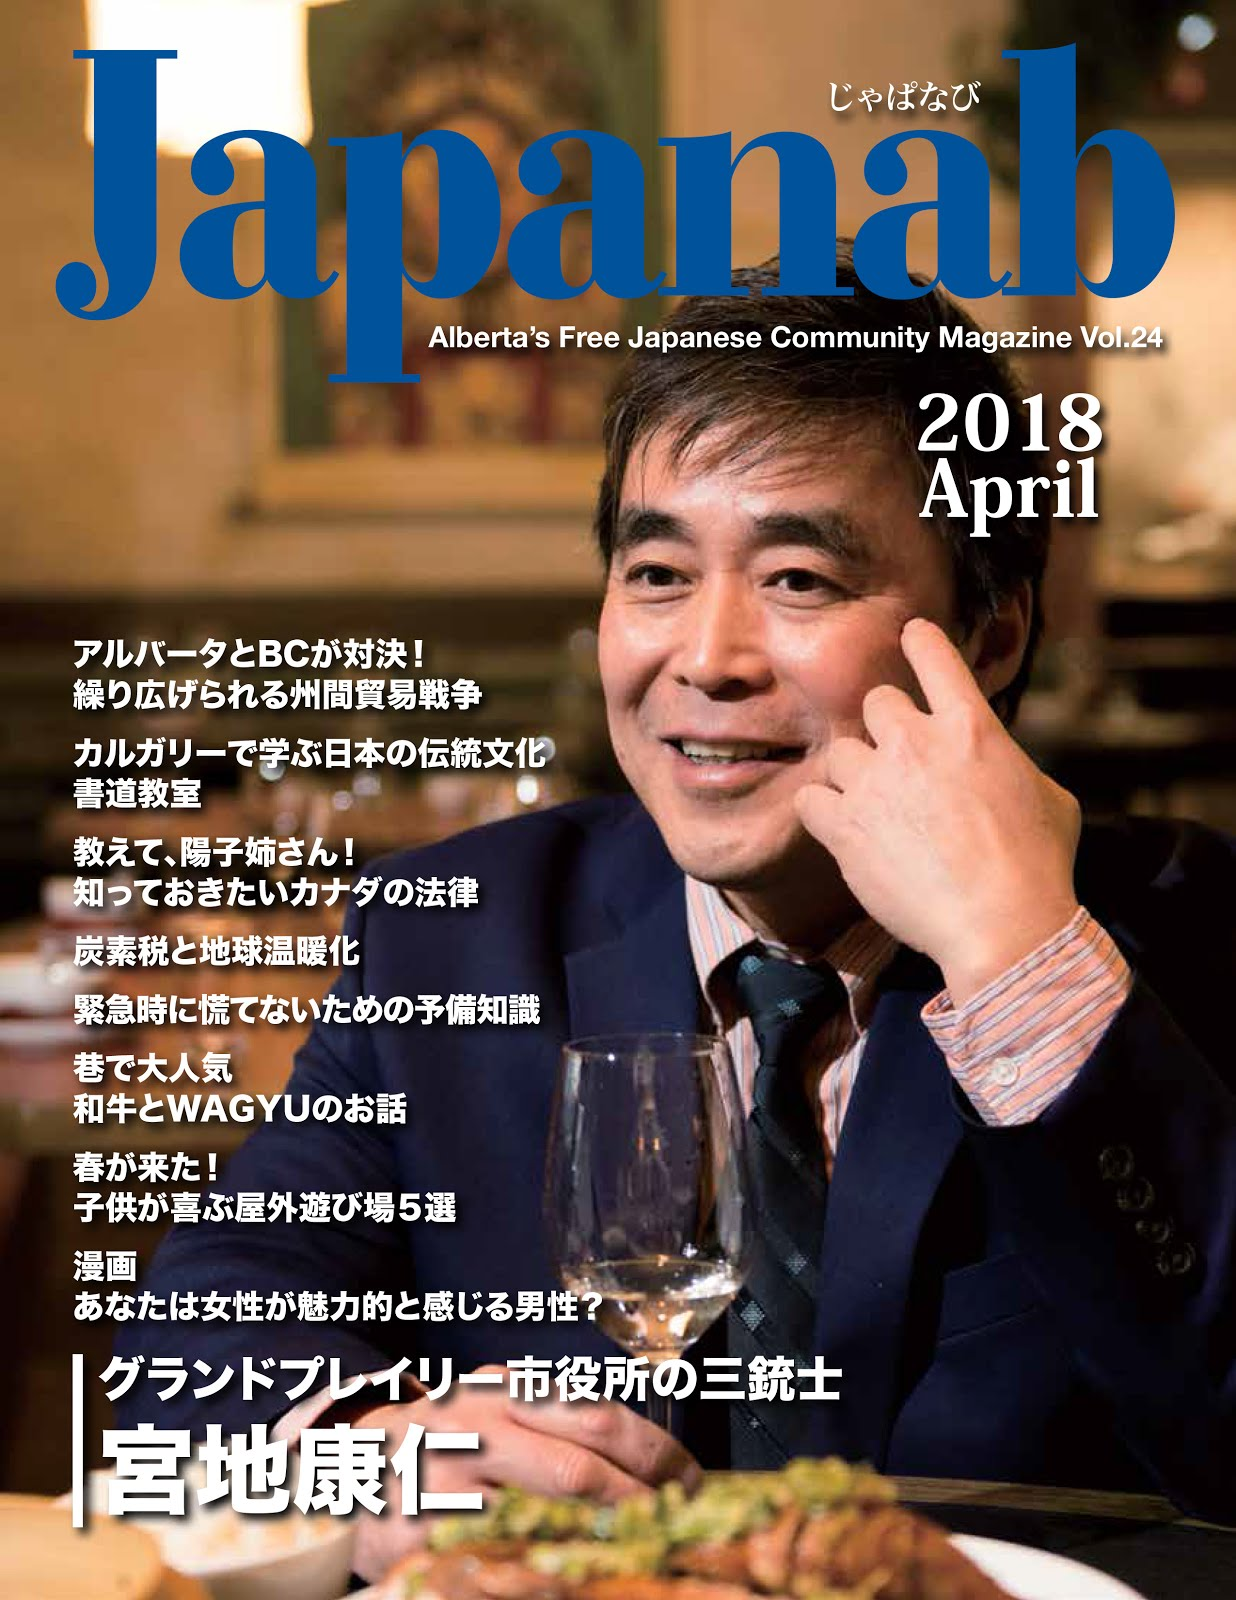 Japanab Vol. 24 - 2018 April